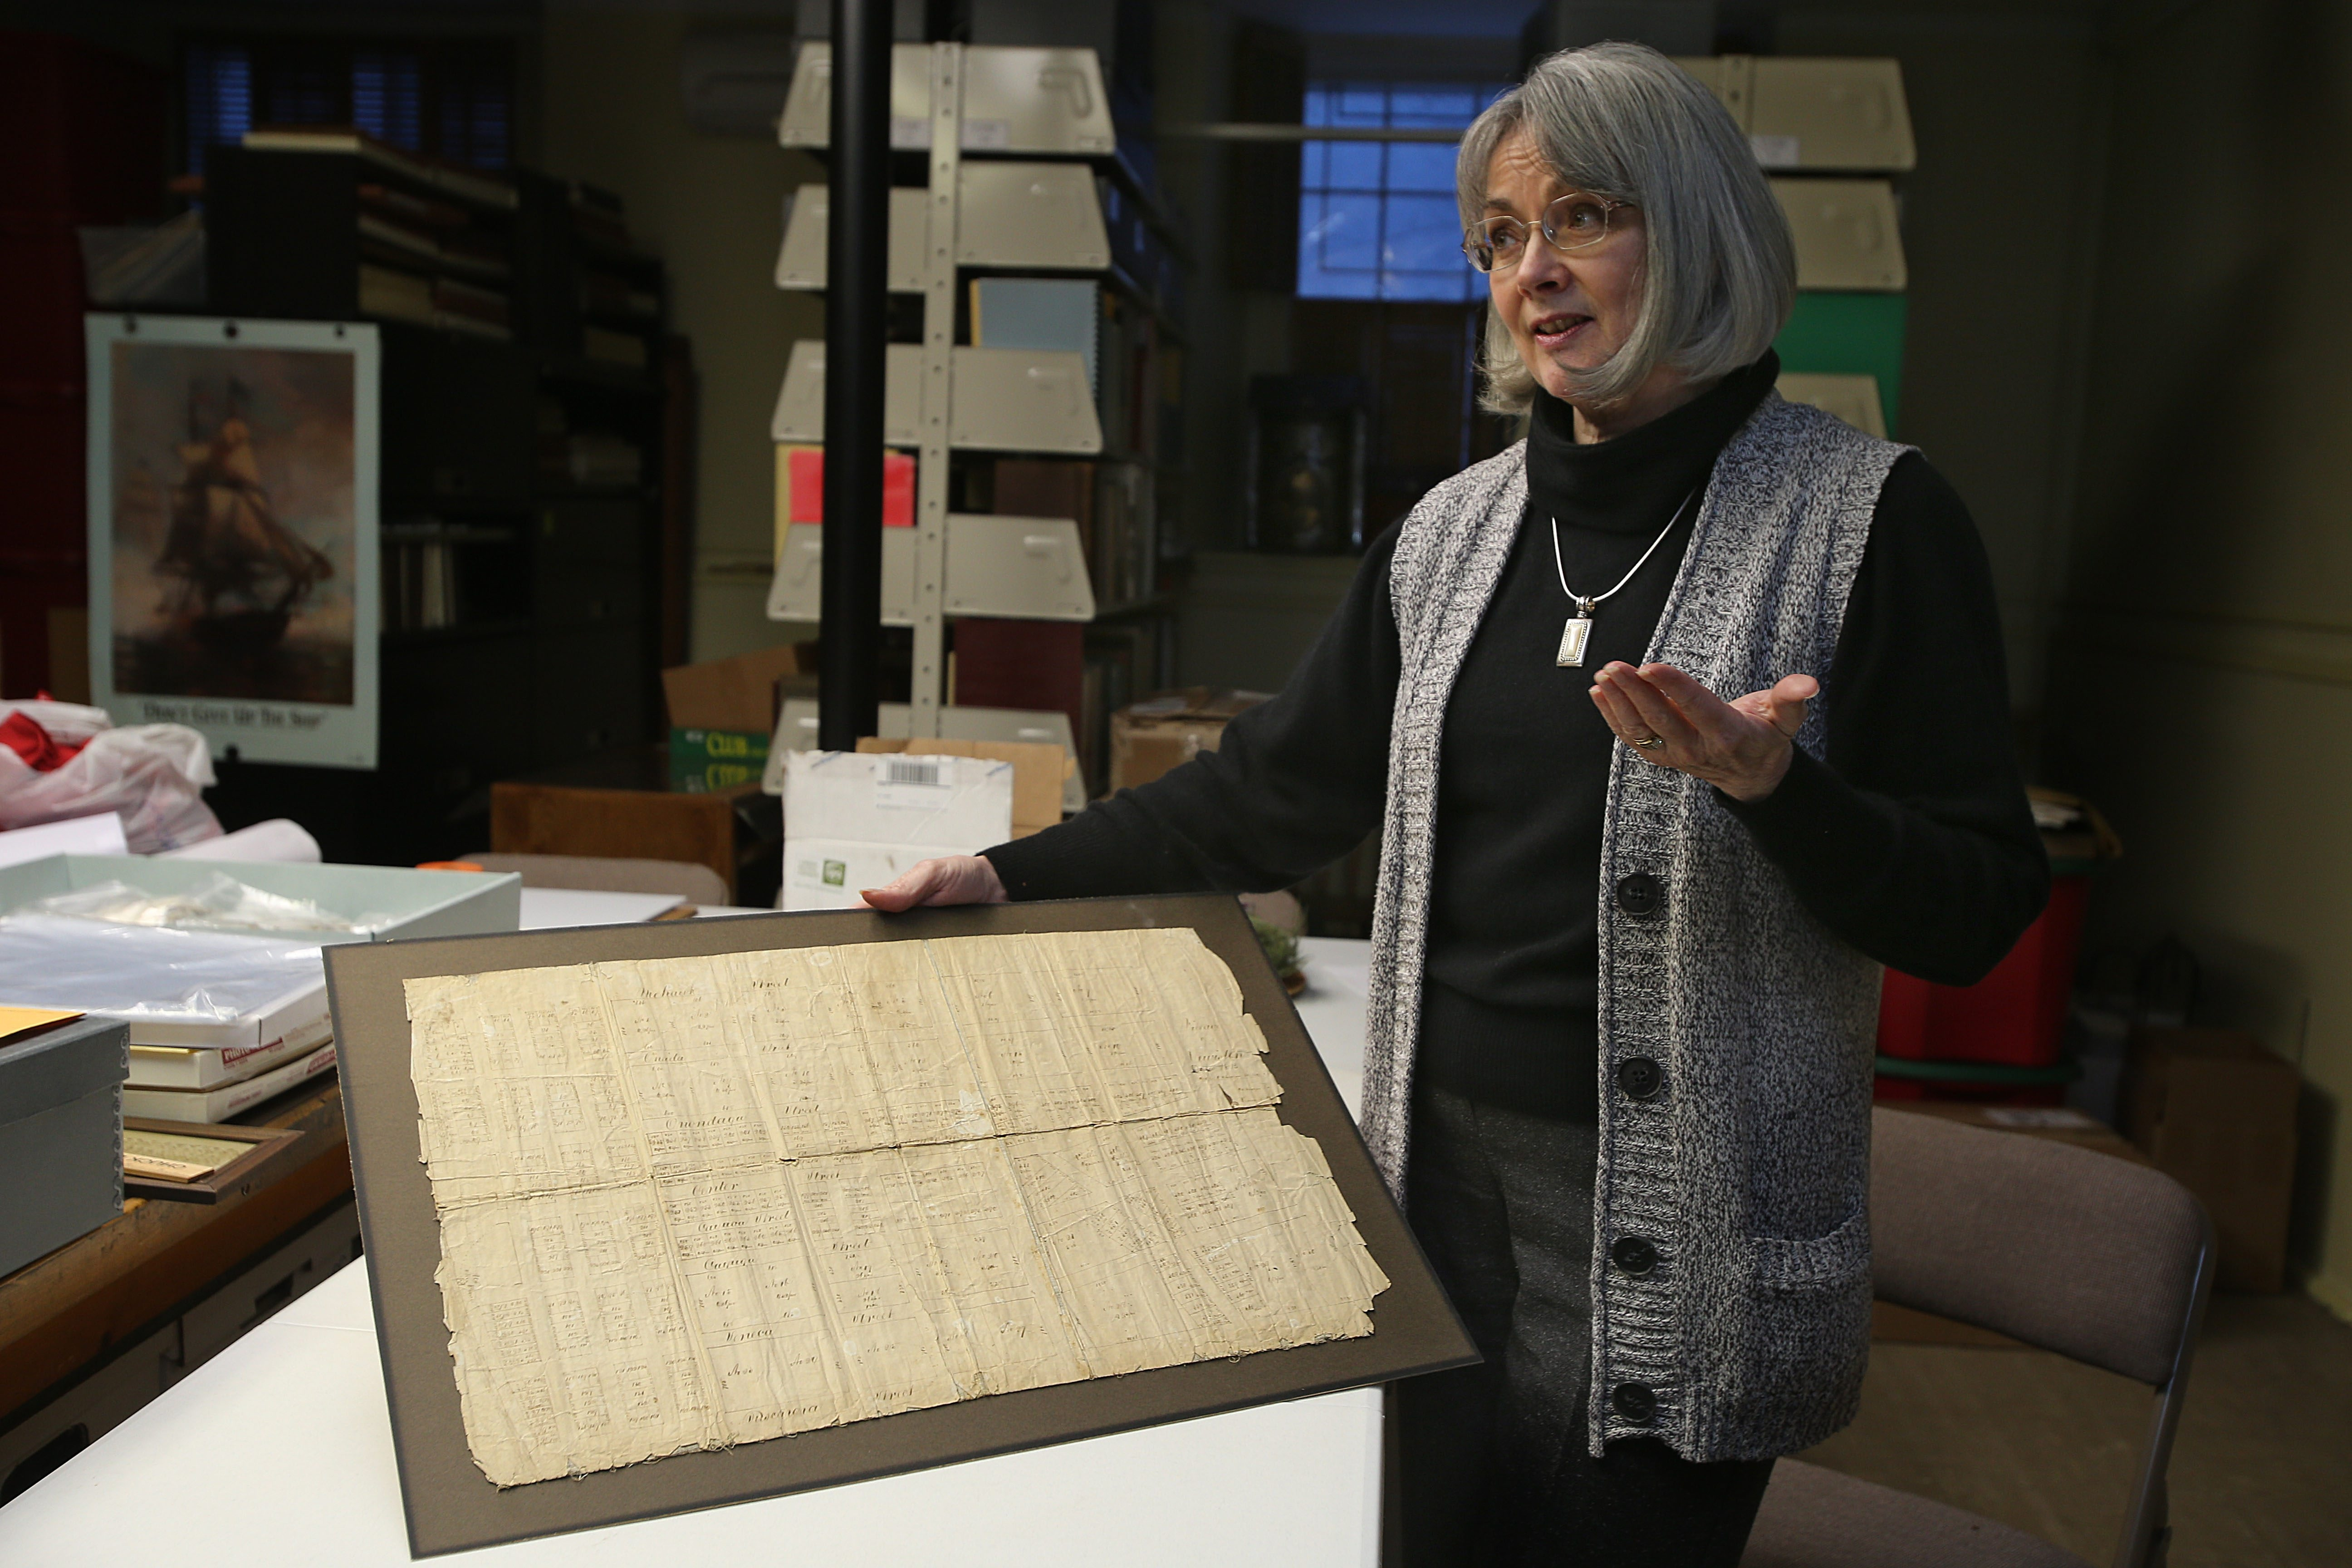 Pam Hauth, executive director of the Historic Association of Lewiston, with an original map of the Village of Lewiston dating back to 1815.